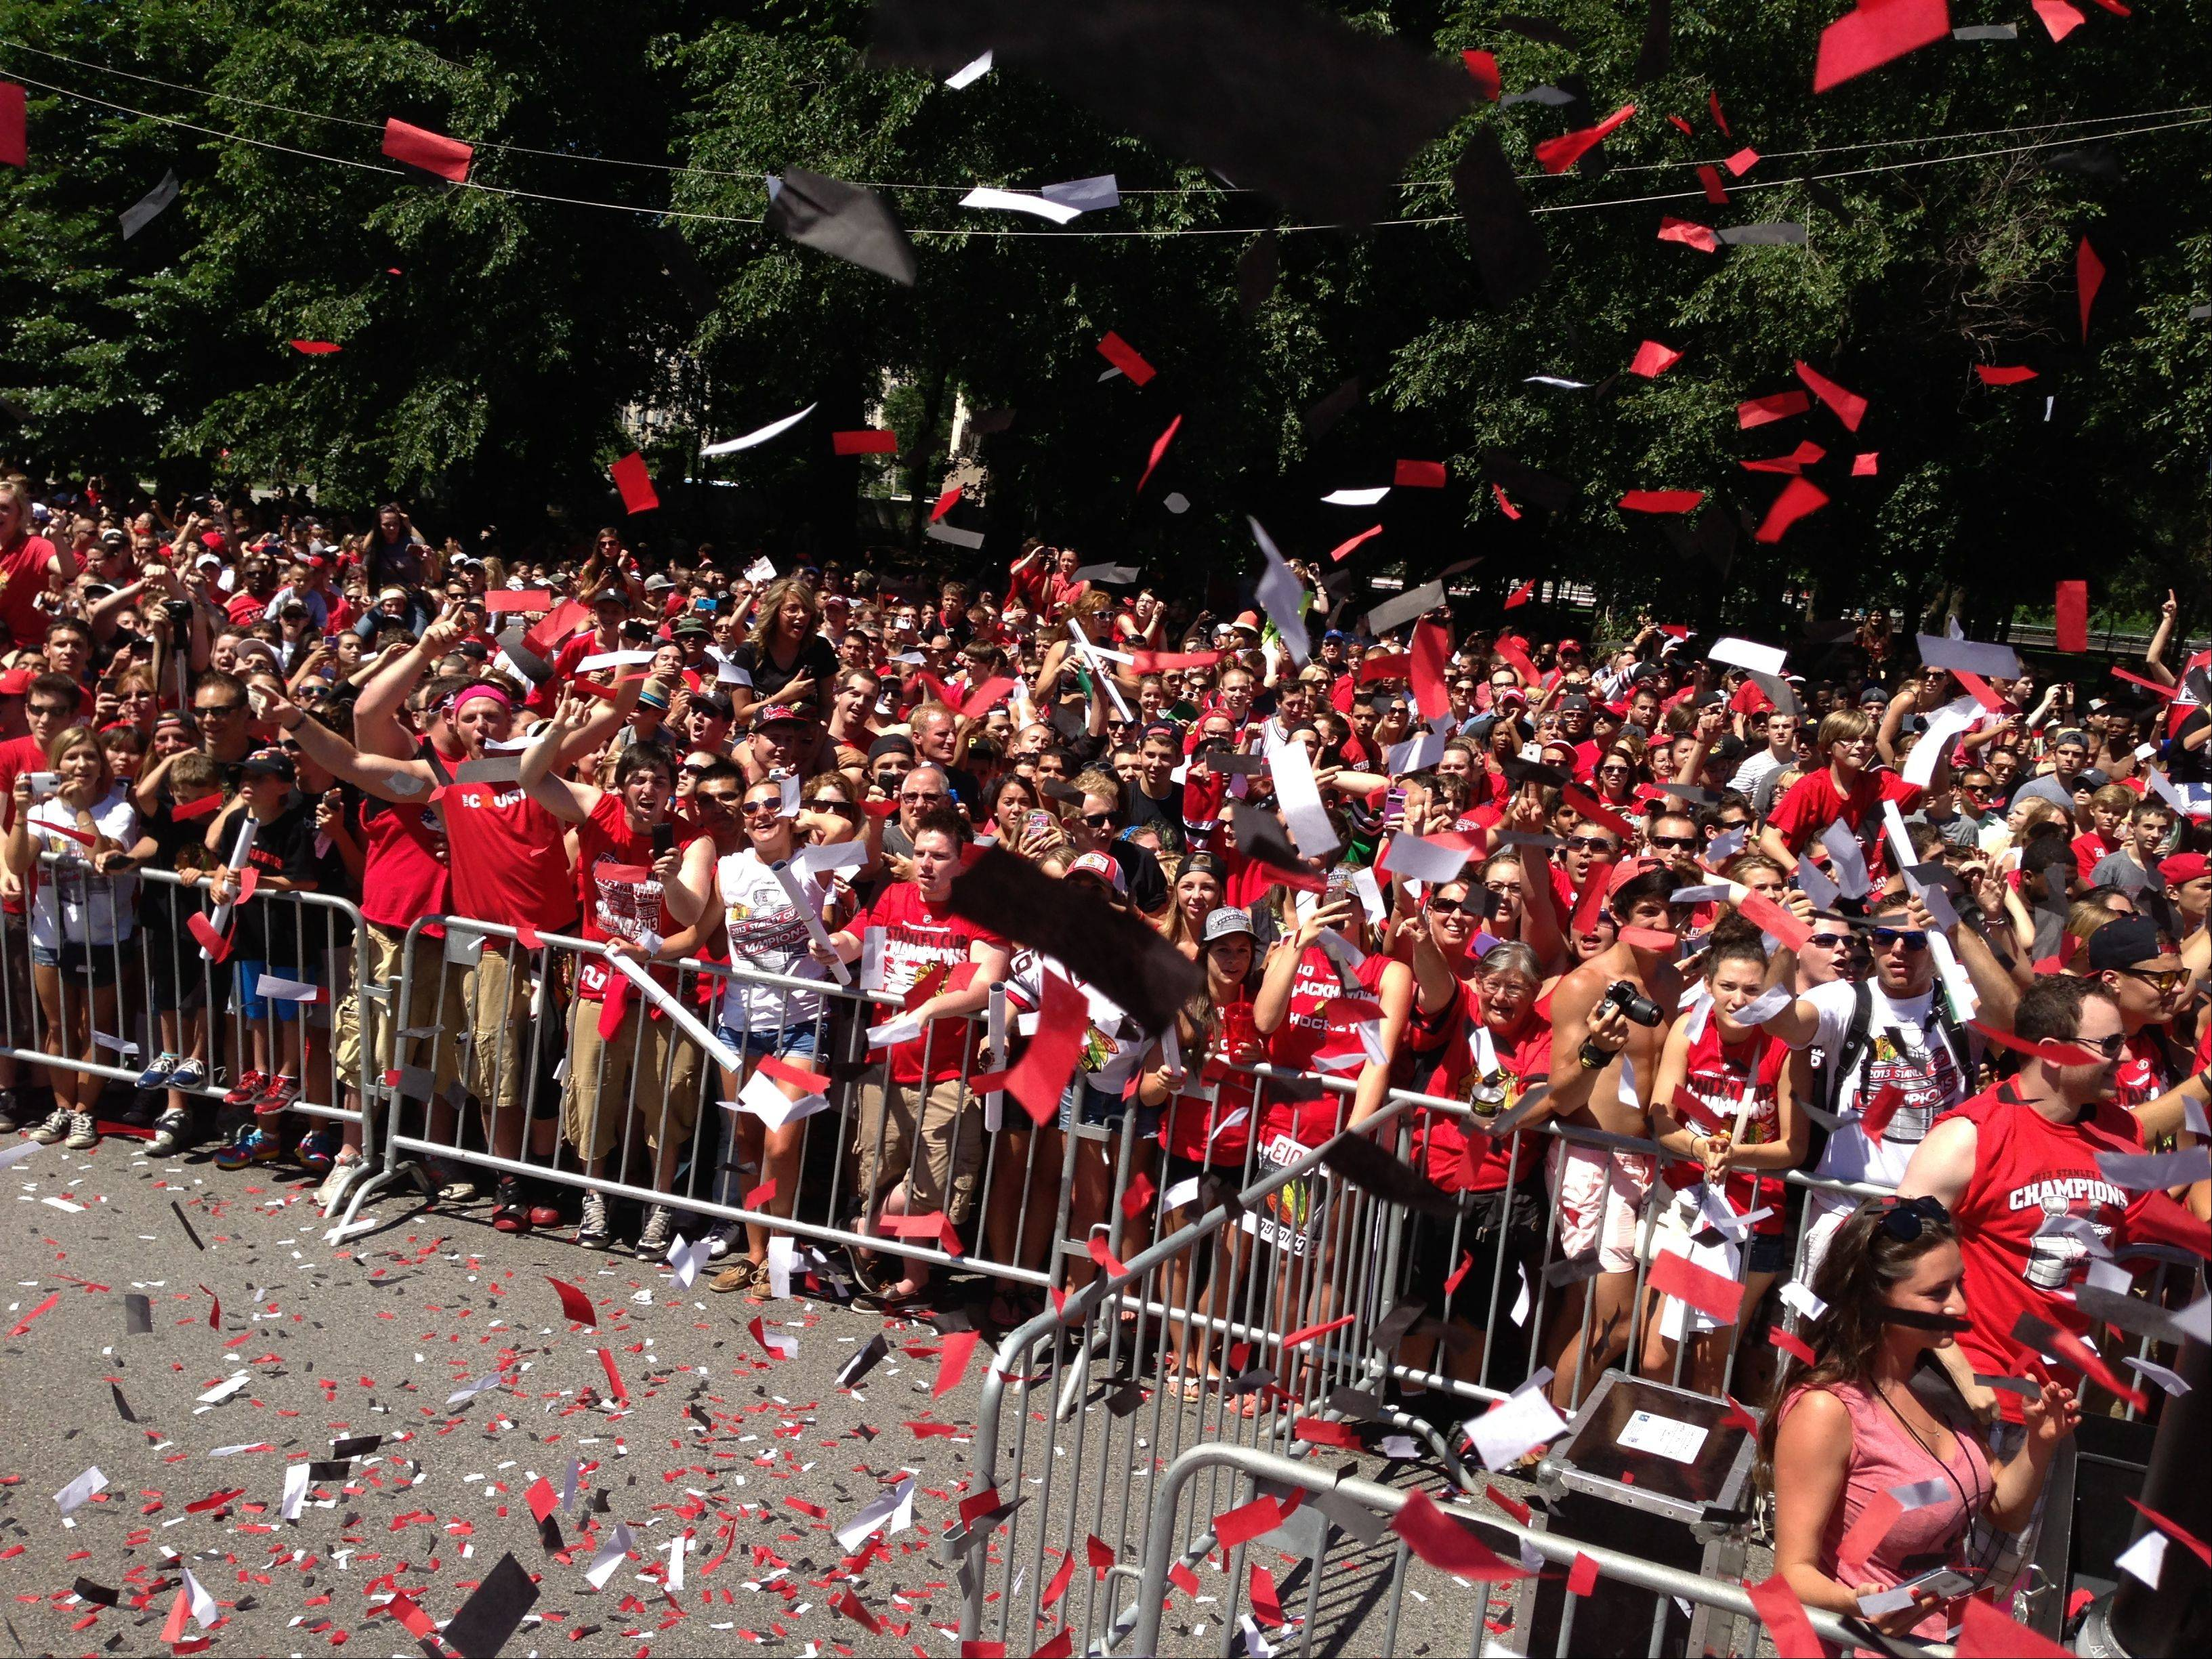 Fans along the parade route cheer on the Chicago Blackhawks as they head to the rally in Grant Park.